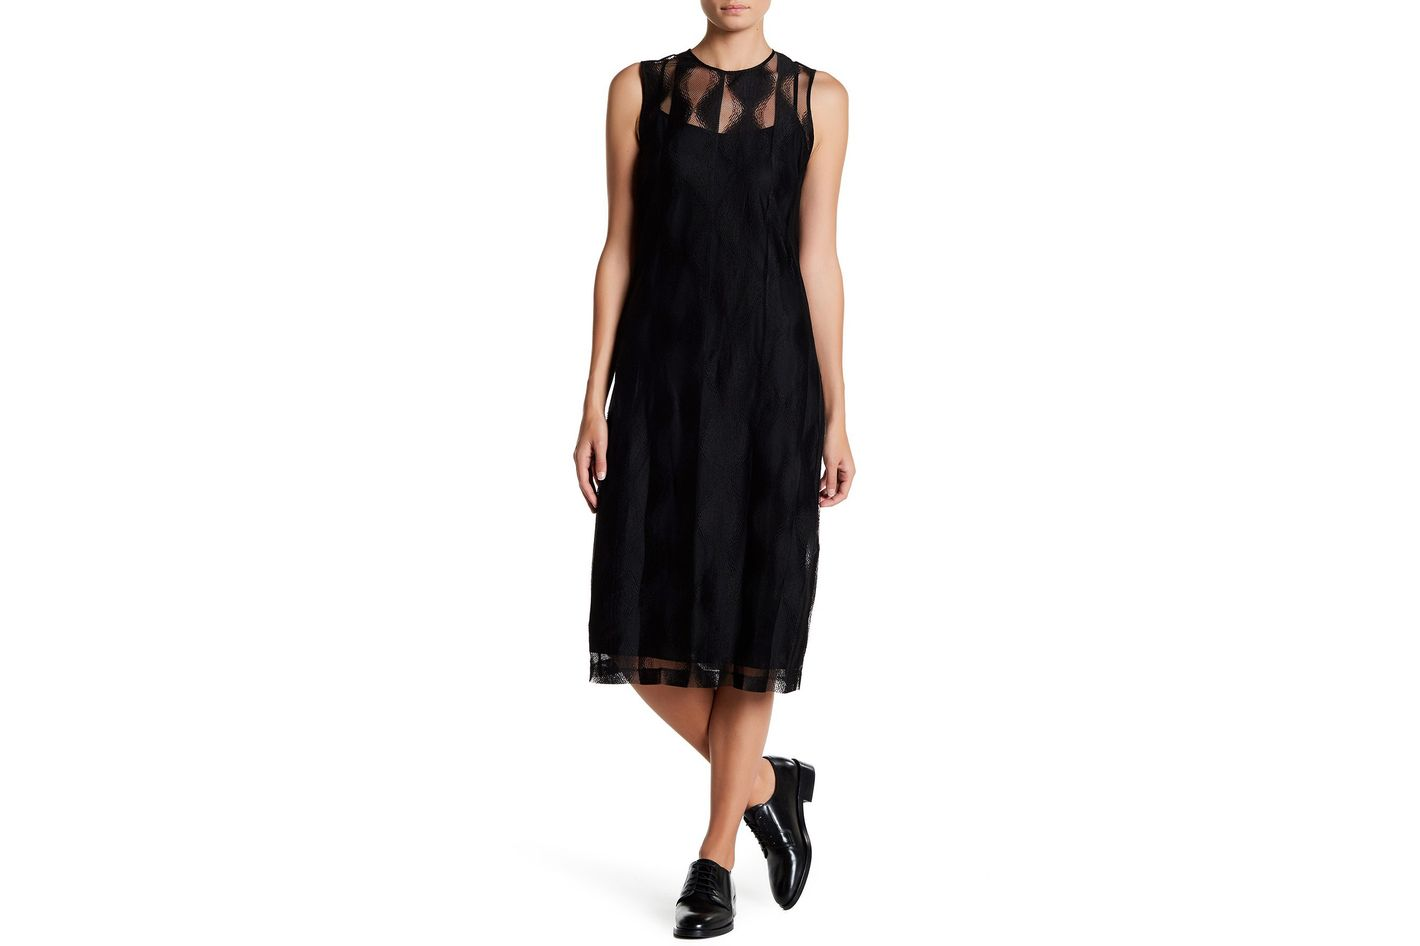 DKNY Mesh Sleeveless Dress